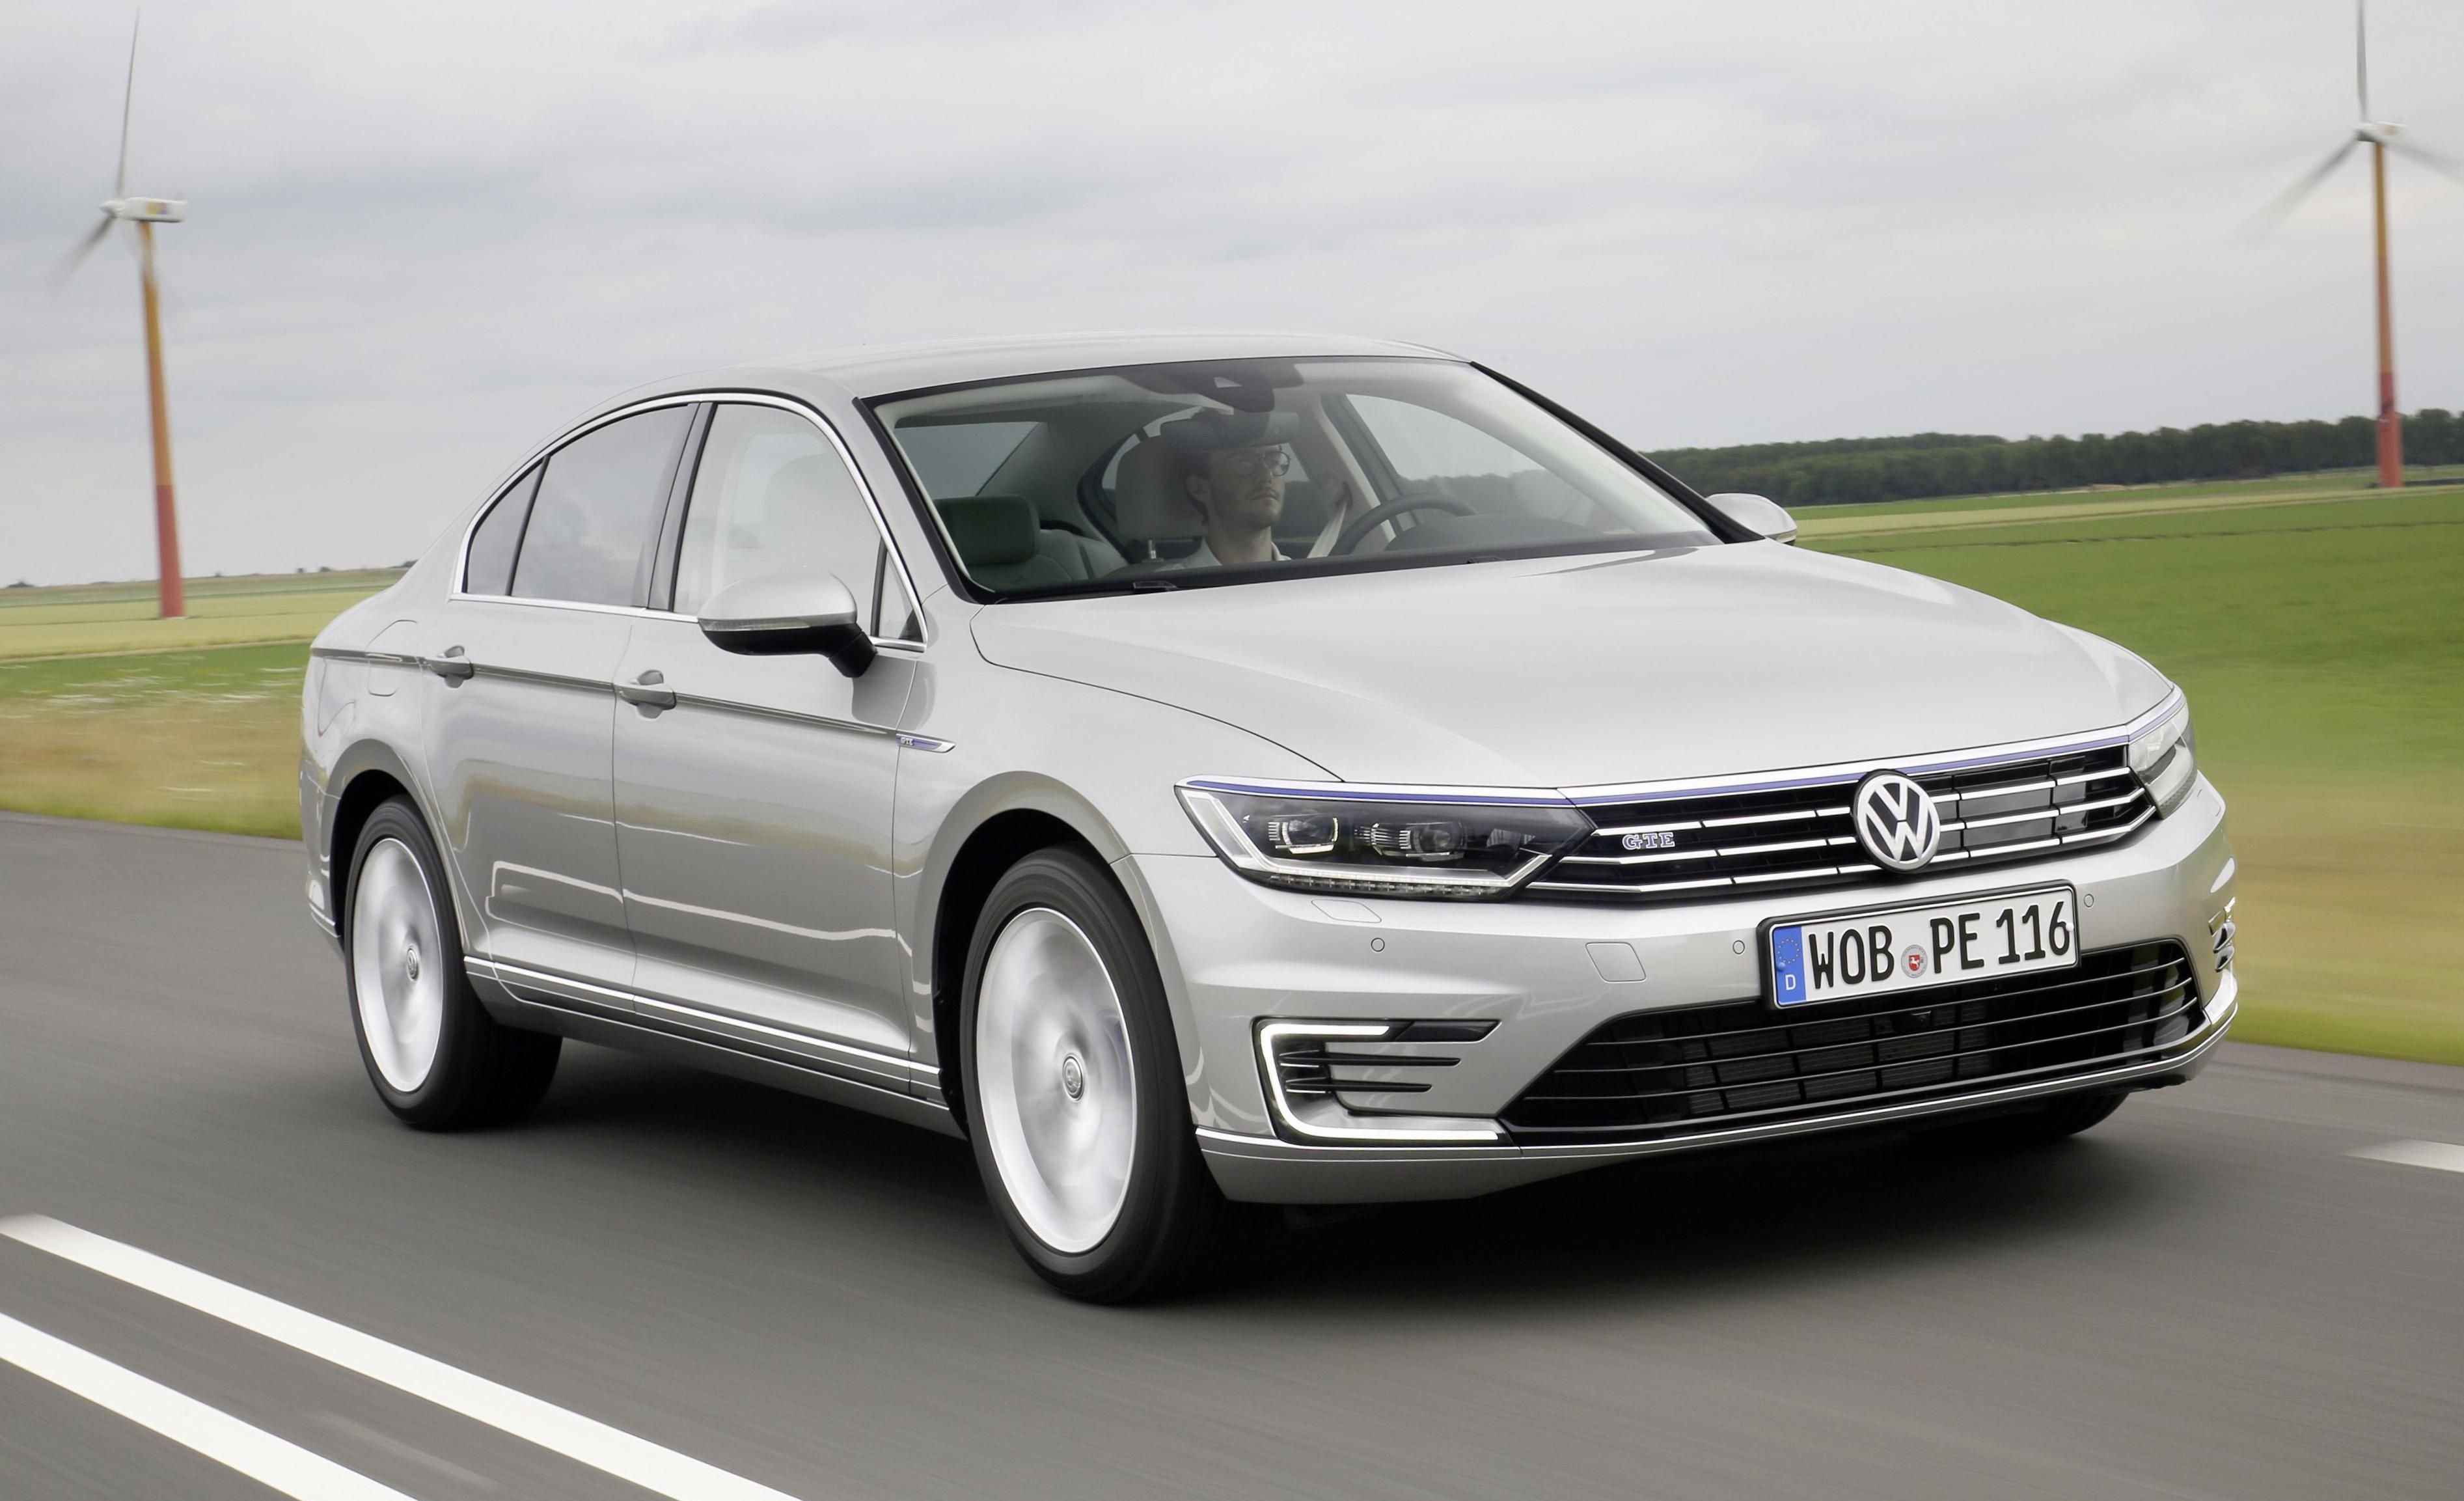 a lease post least passat your once autos you specials in why deals volkswagen must at lifetime experience